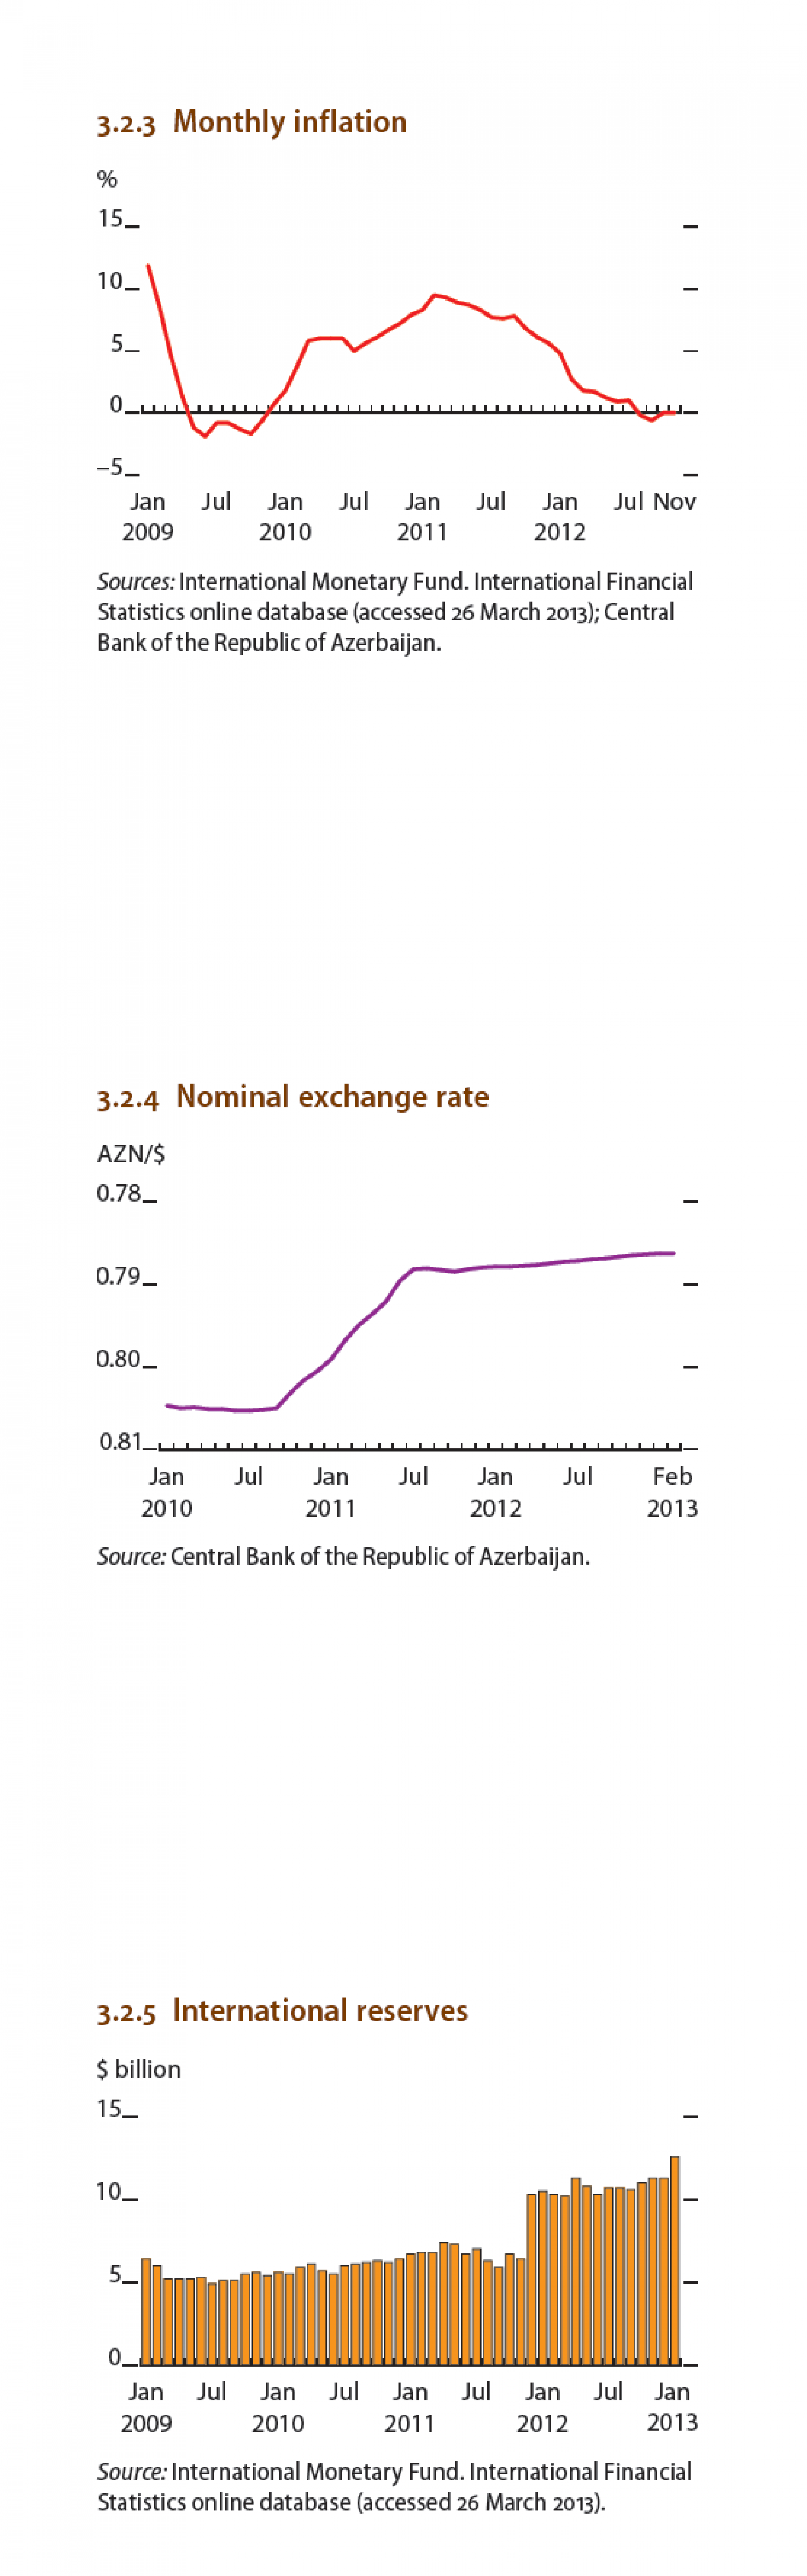 Azerbaijan : Montly inflation, Nominal exchange rate, International reserves Infographic